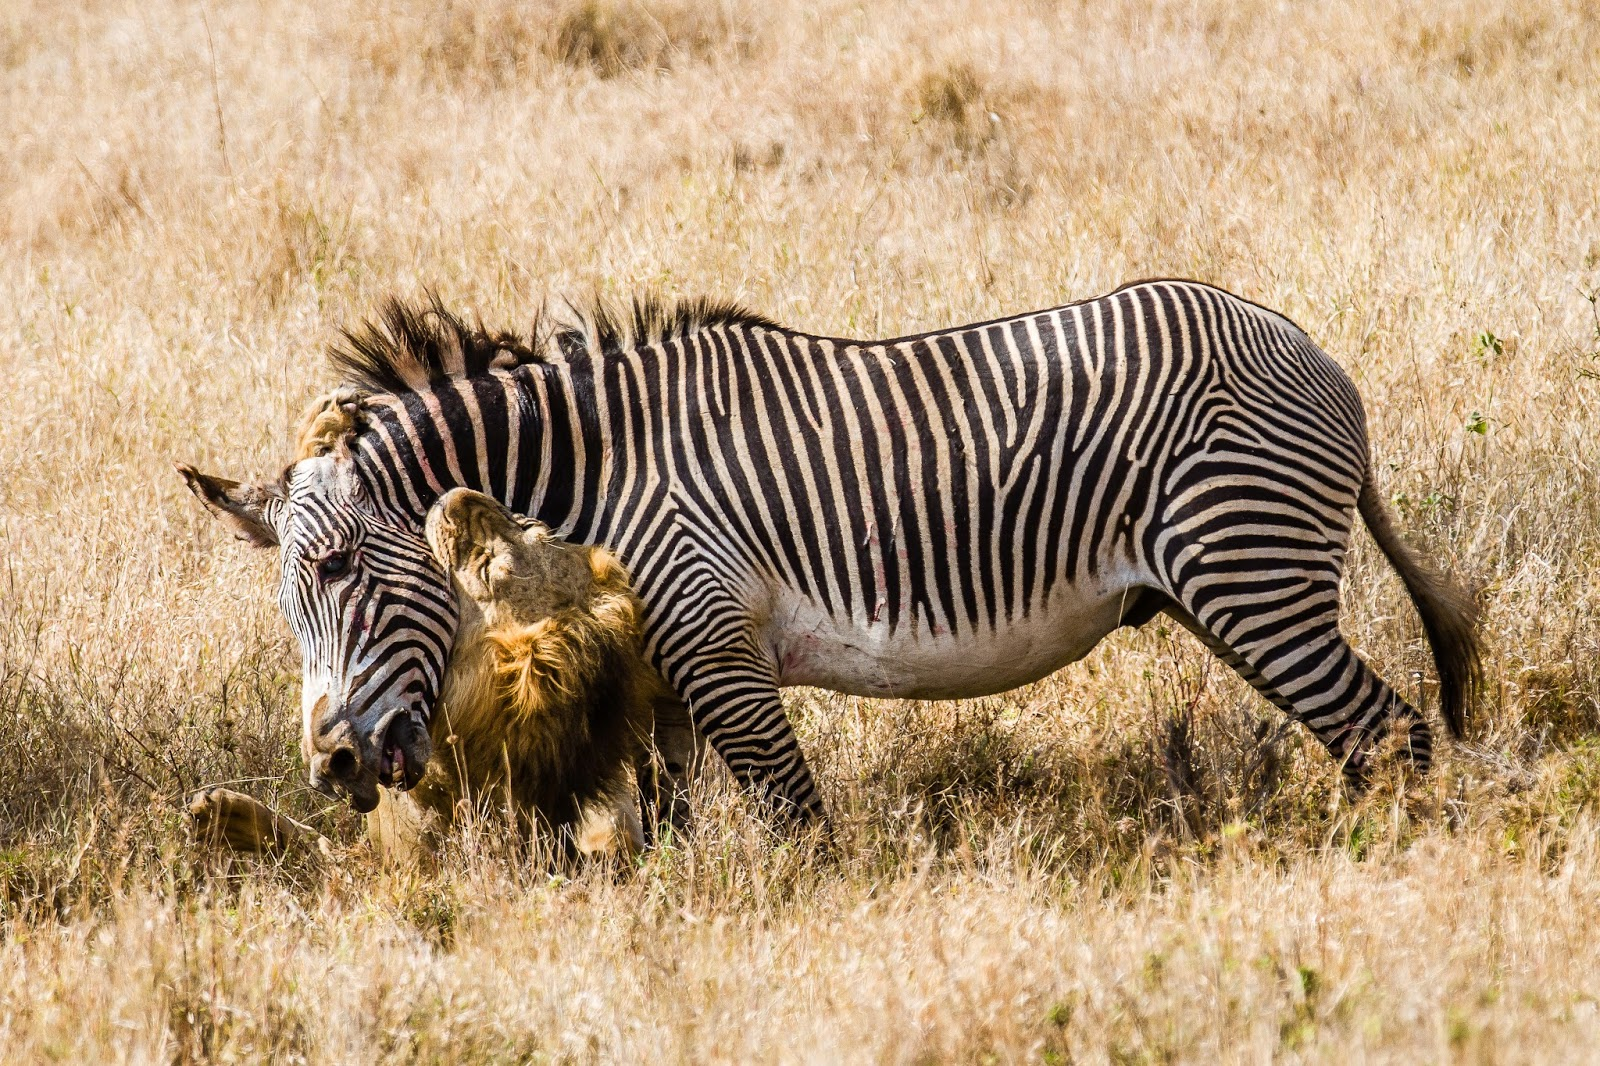 After approximately four minutes, the Zebra collapsed and the lion ... Zebra Weight